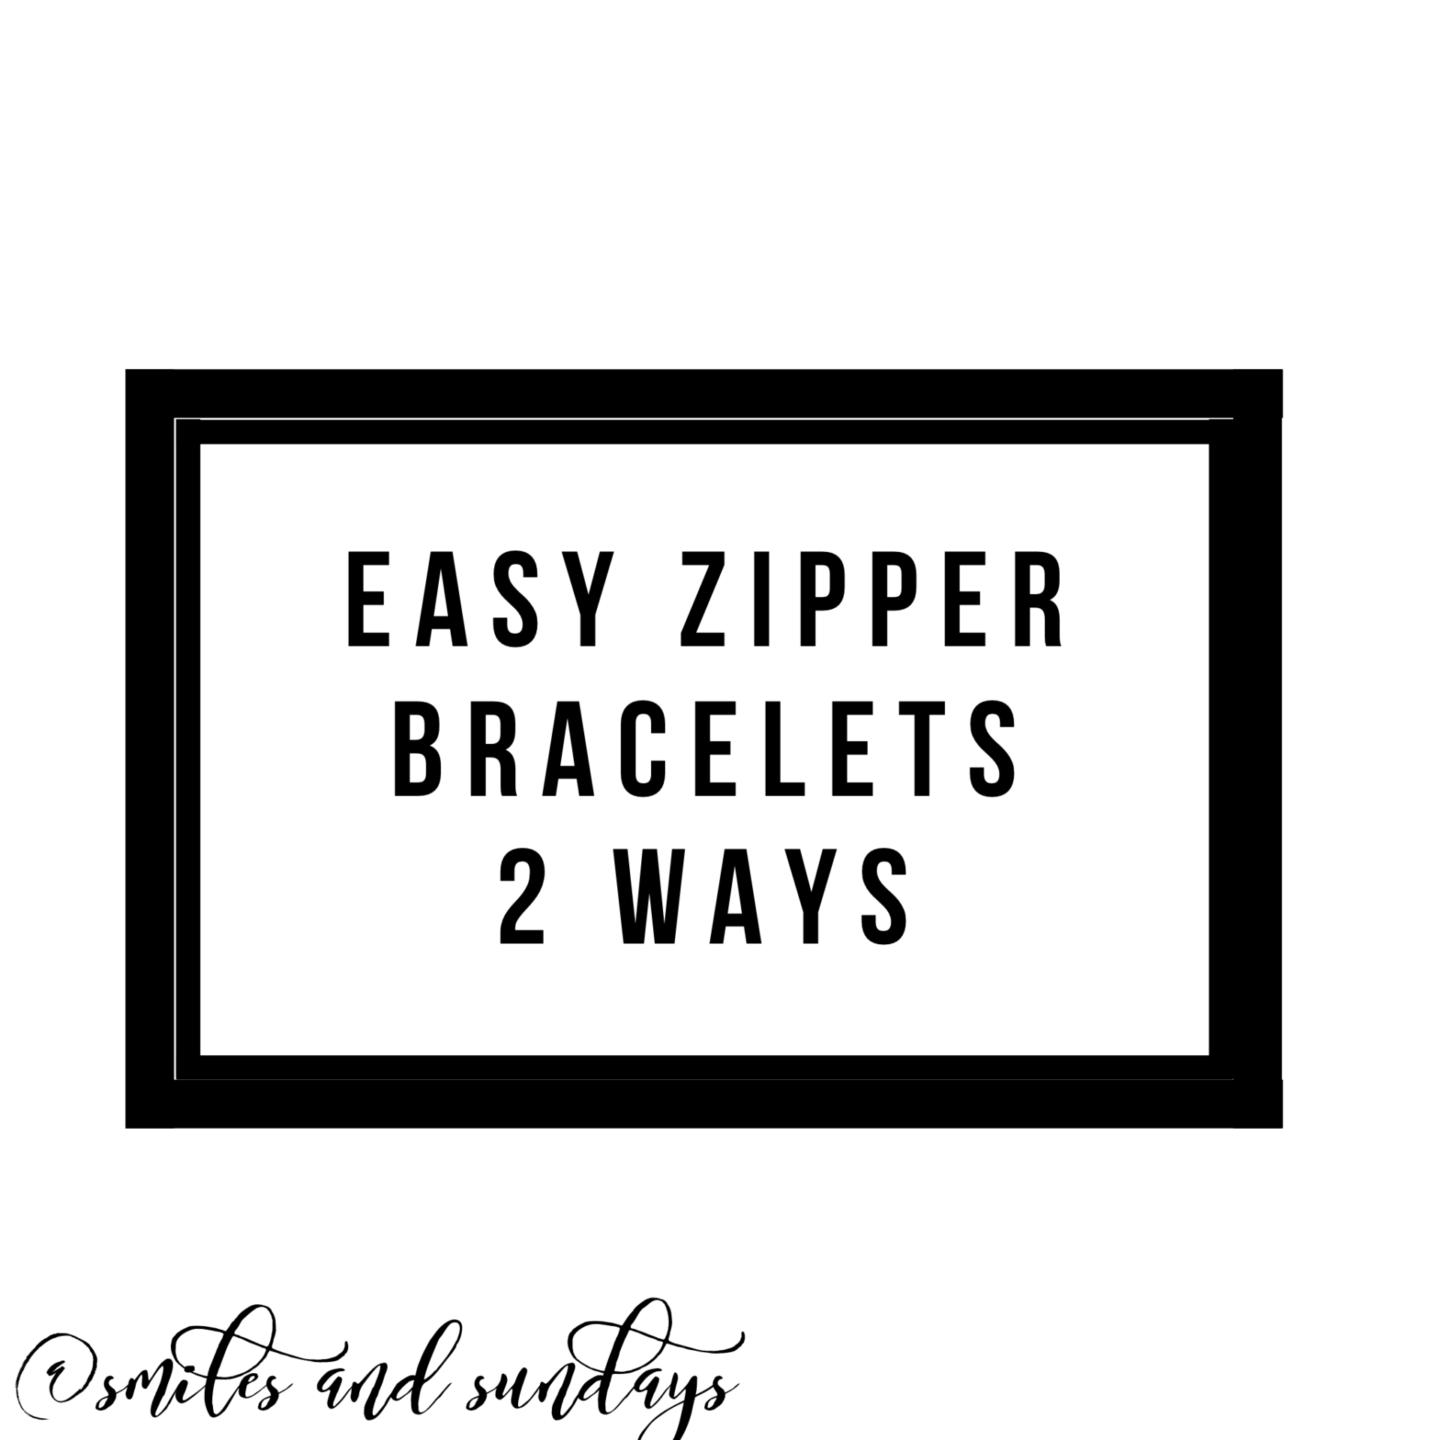 Zipper Bracelets 2 Ways